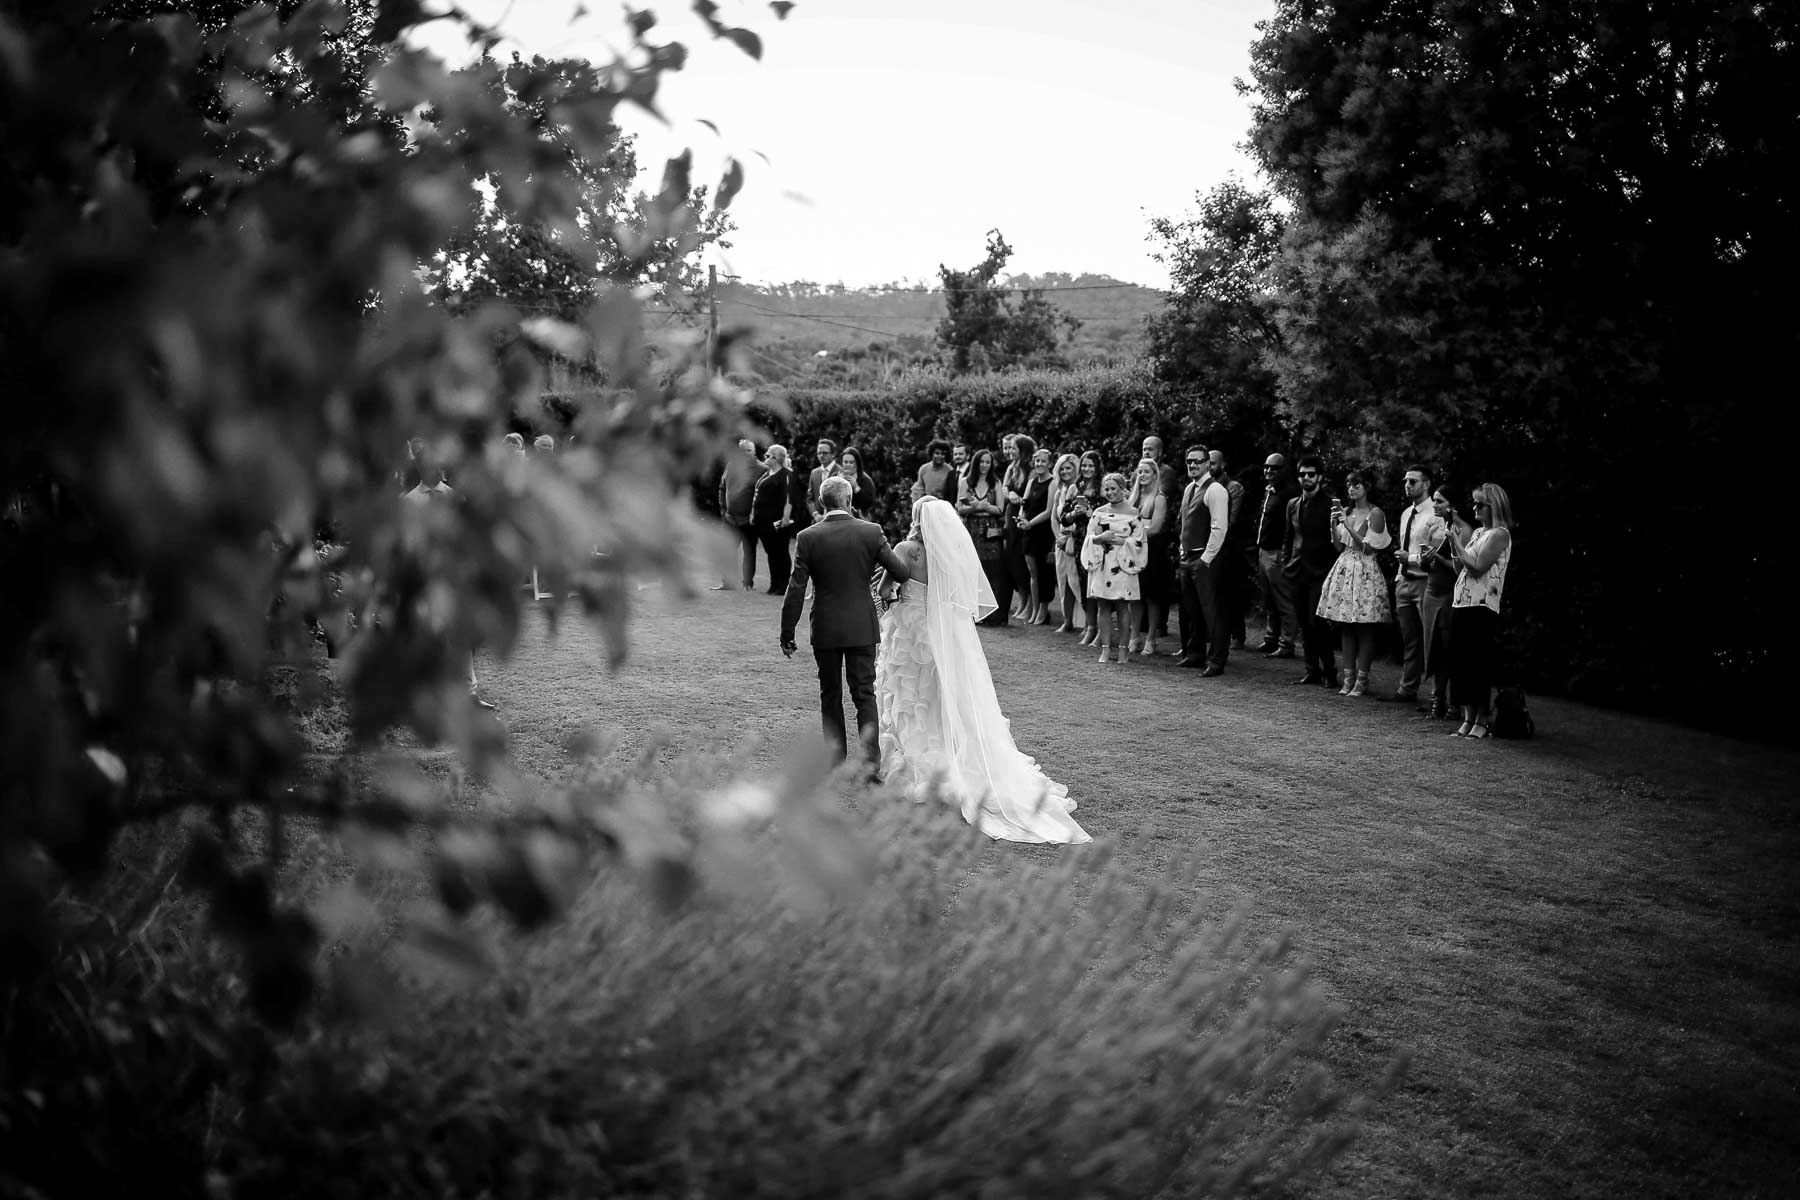 Wedding Ceremony - Karen Brothers Photography Daylesford